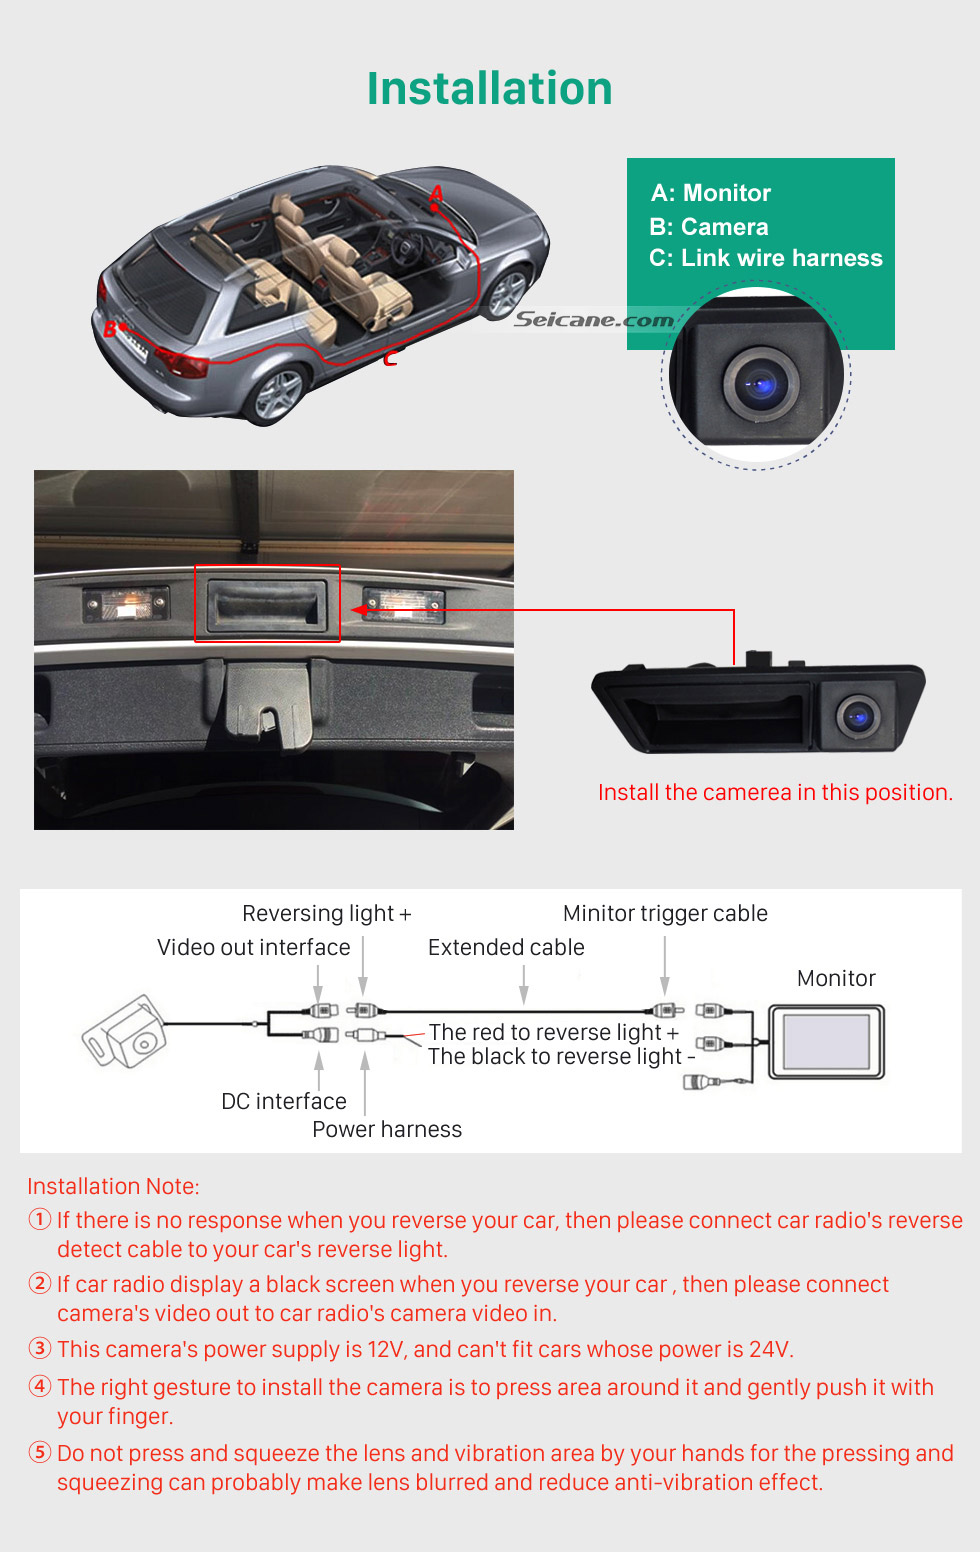 Installation HD Wired Car Parking Backup Reversing Camera for 2011-2013 VW Volkswagen Touareg 2012-2013 Sharan Waterproof four-color ruler and LR logo Night Vision free shipping